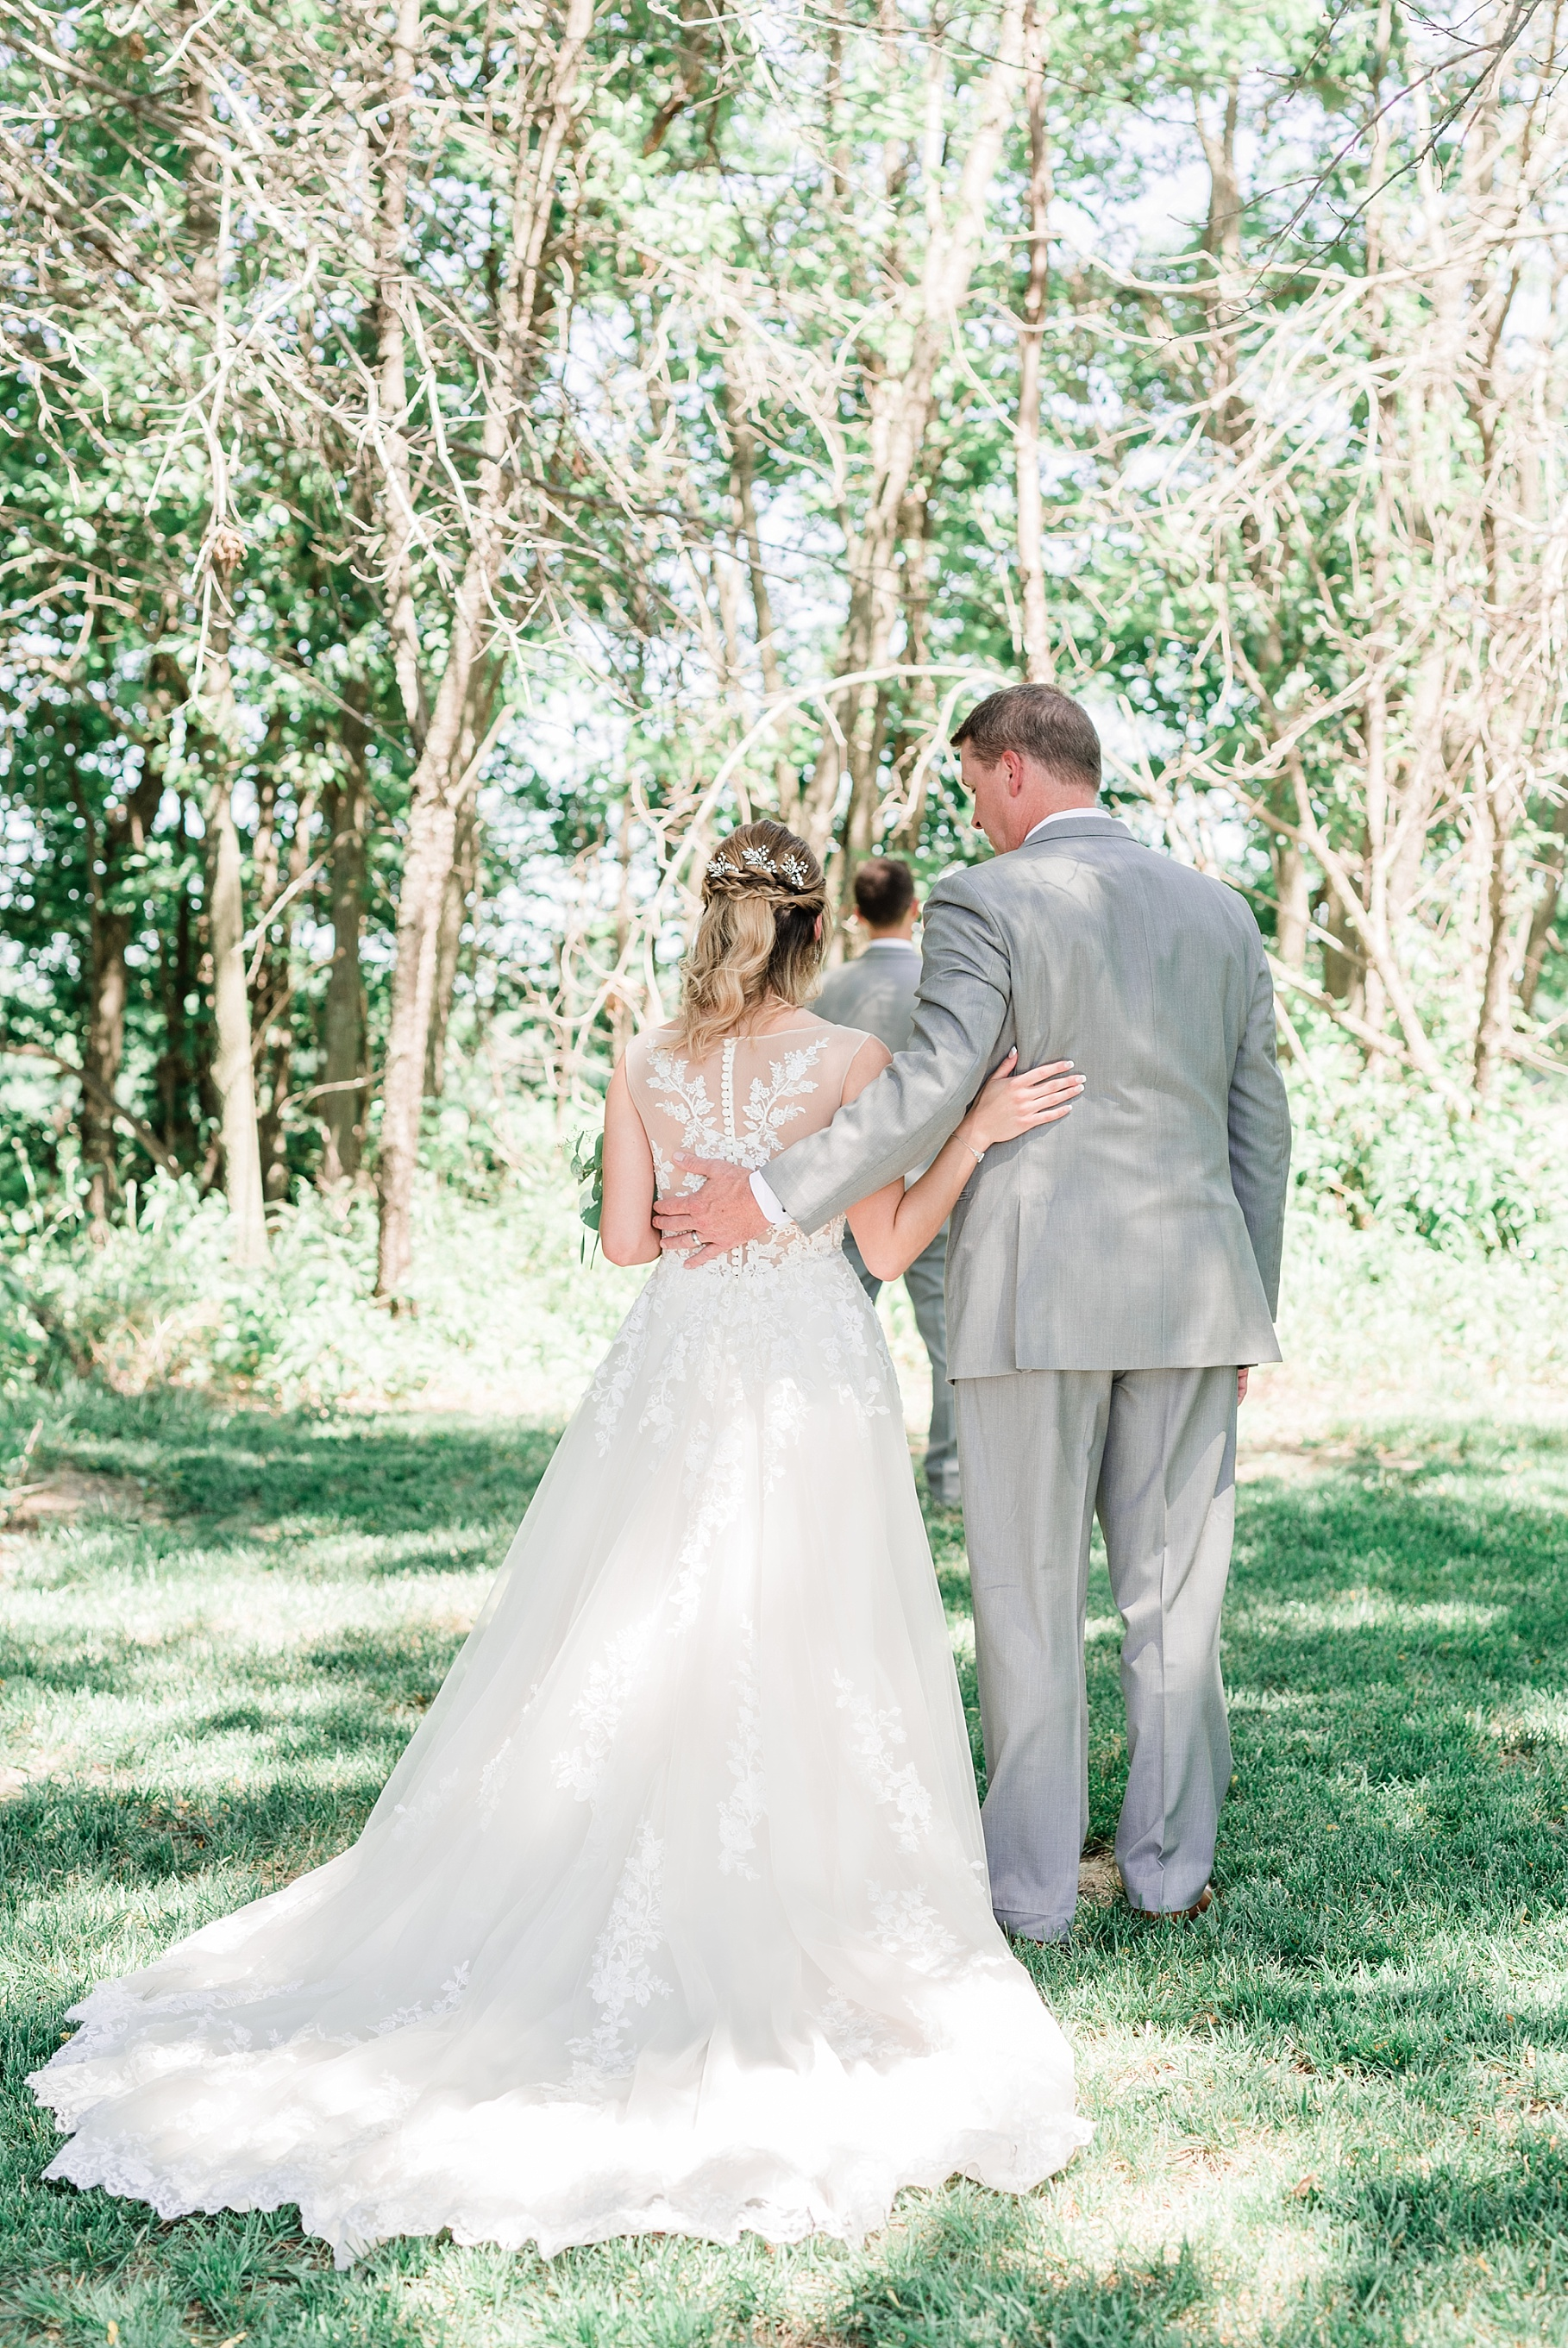 Classic Quartz, White, and Deep Green Wedding at Emerson Fields by Kelsi Kliethermes Photography Best Columbia Missouri and Maui Hawaii Wedding Photographer_0060.jpg